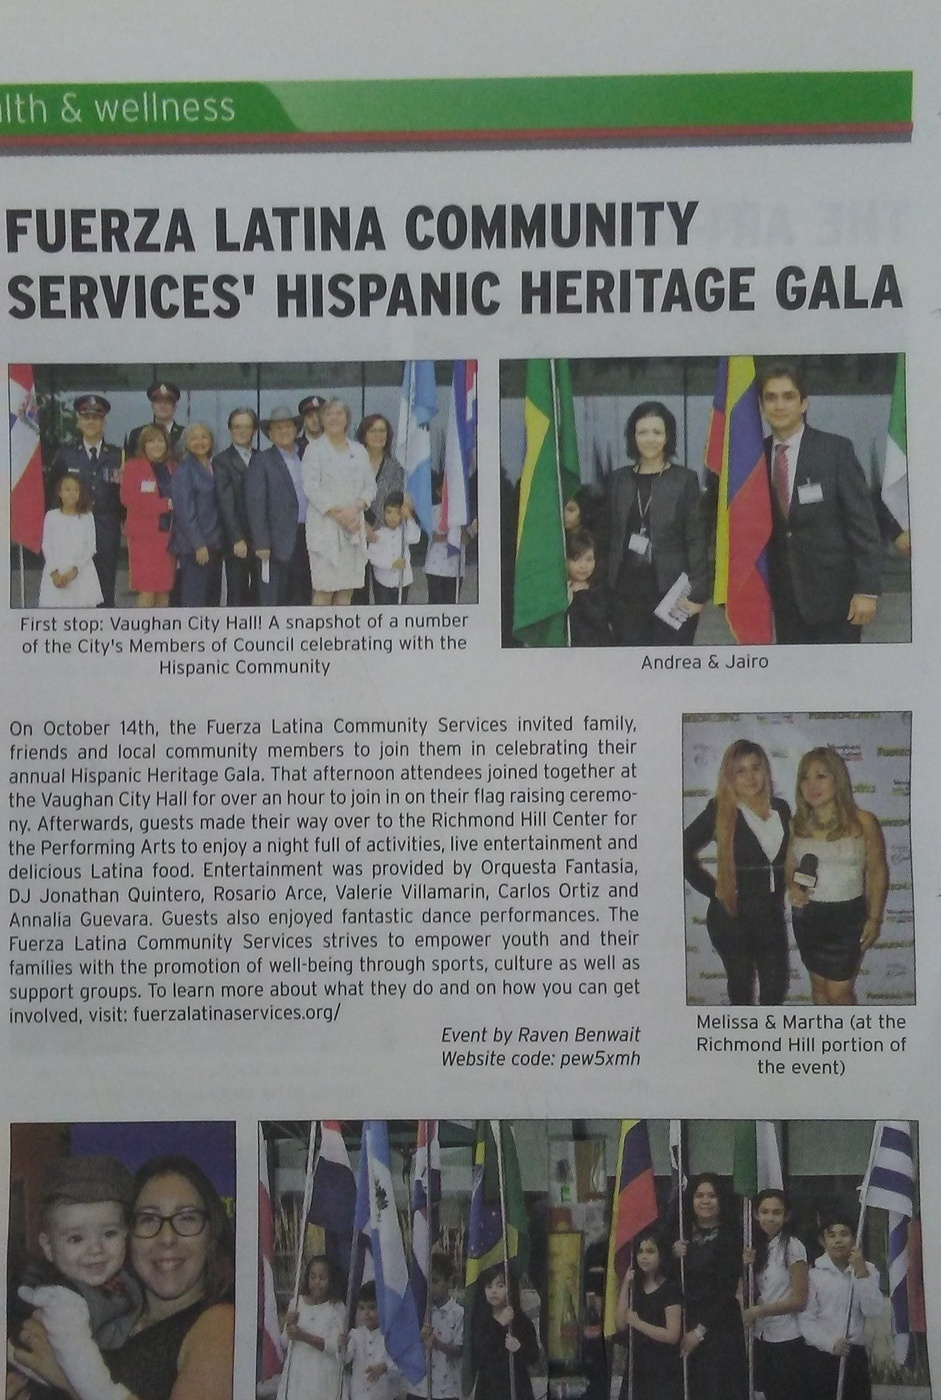 hispanic heritage gala atricle 000